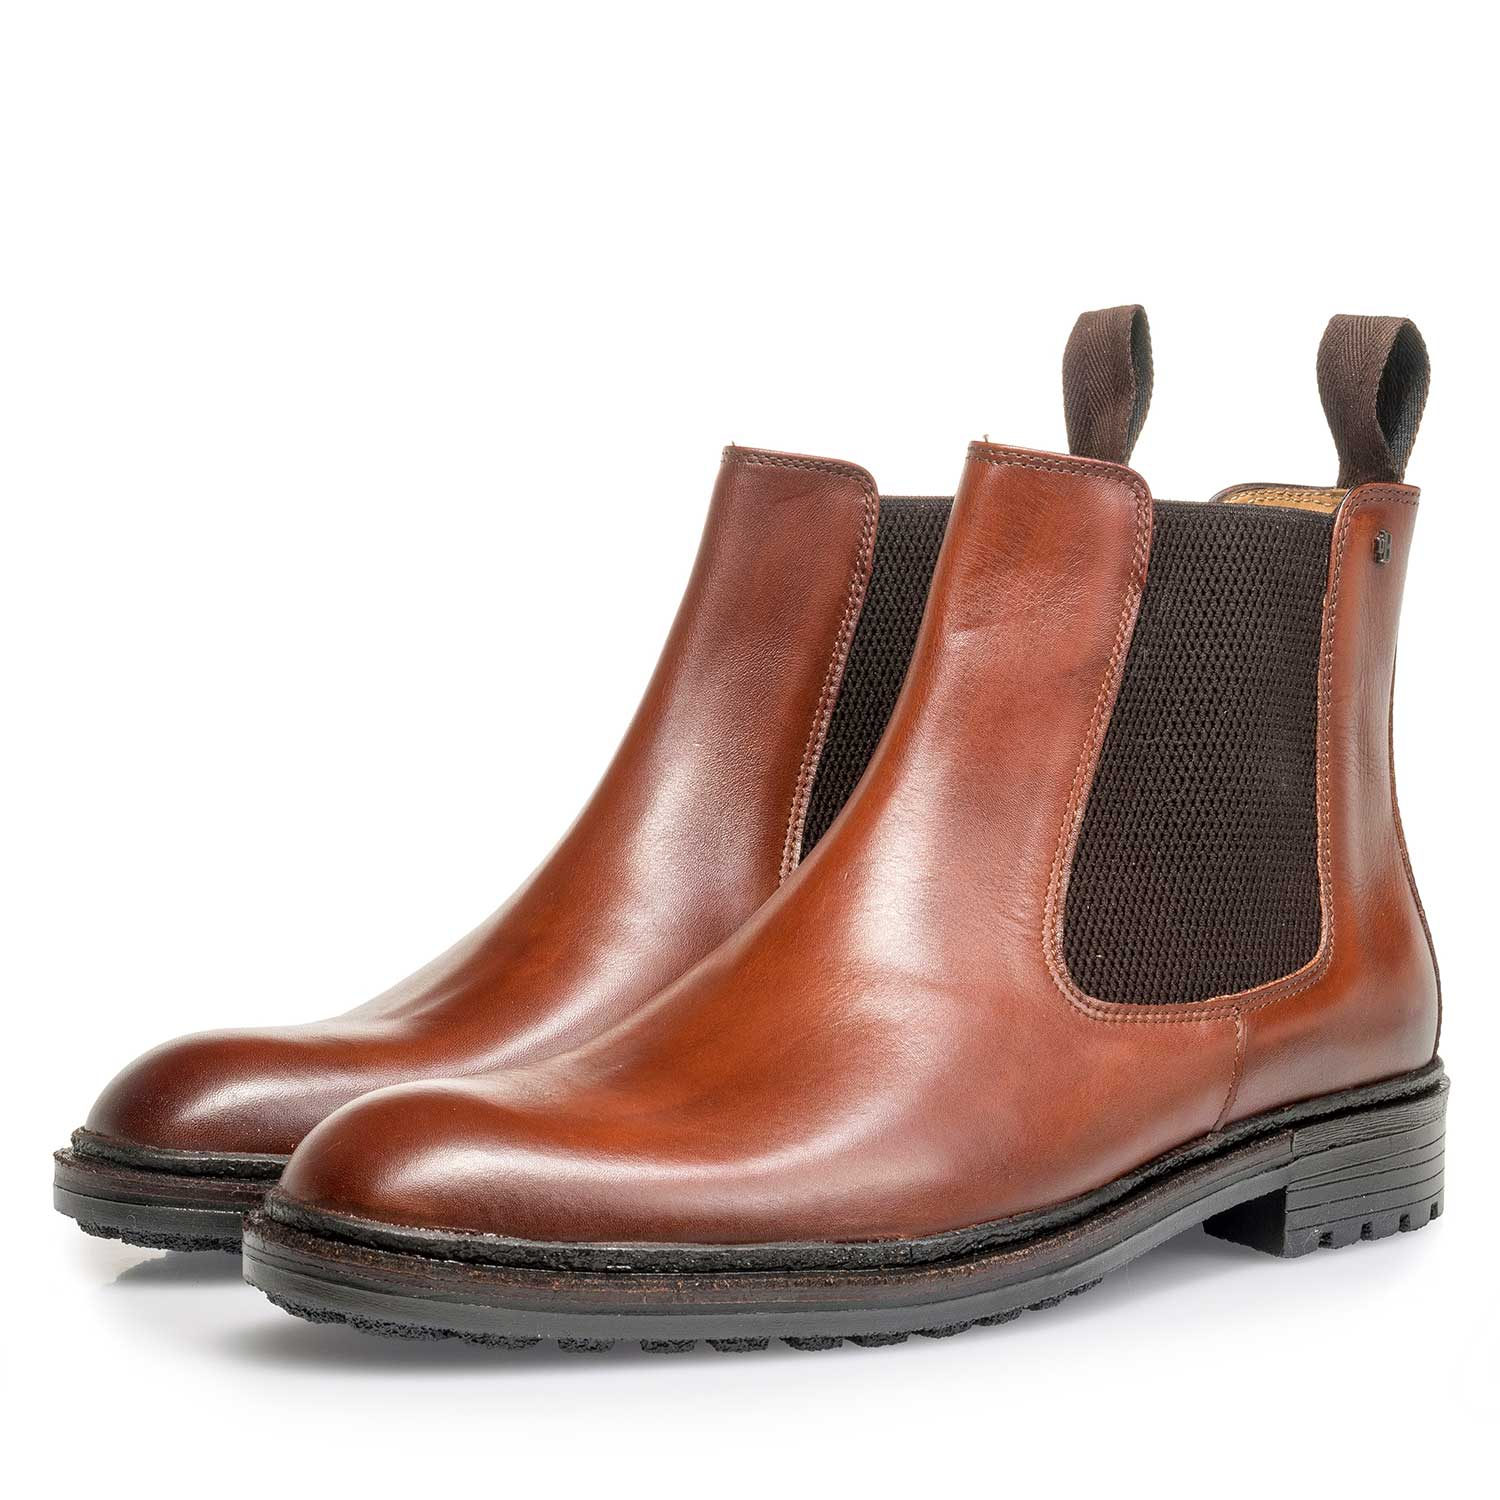 10355/06 - Cognac-coloured calf leather Chelsea boot